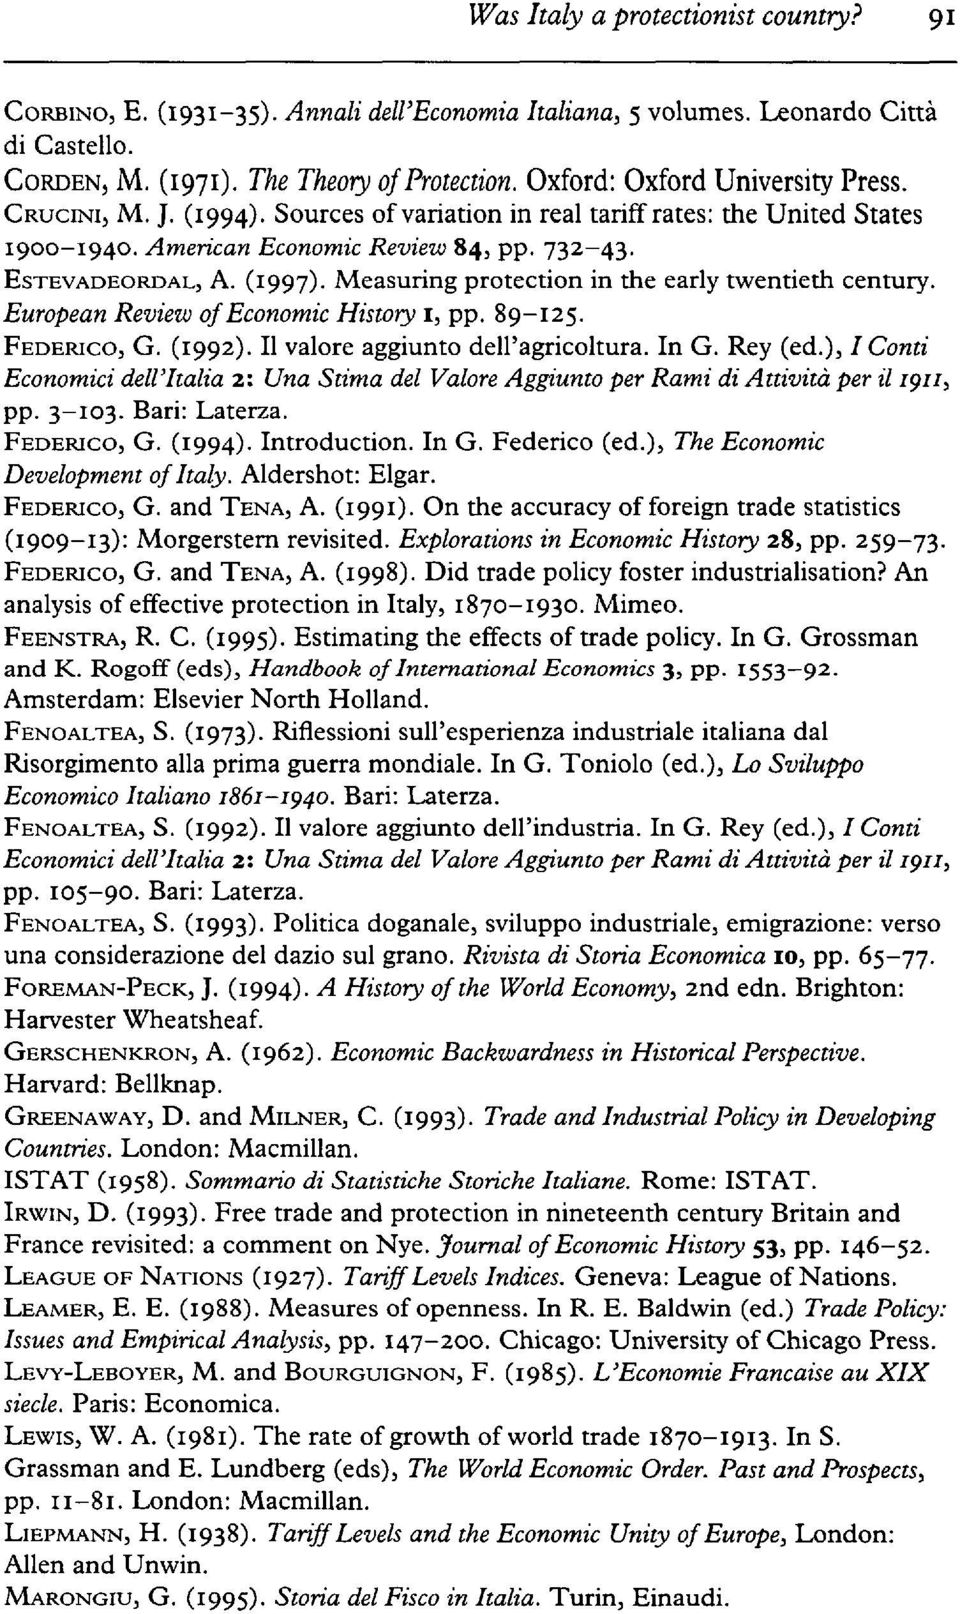 Measuring protection in the early twentieth century. European Review of Economic History 1, pp. 89-12. FEDERICO, G. (1992). II valore aggiunto deh'agricoltura. In G. Rey (ed.